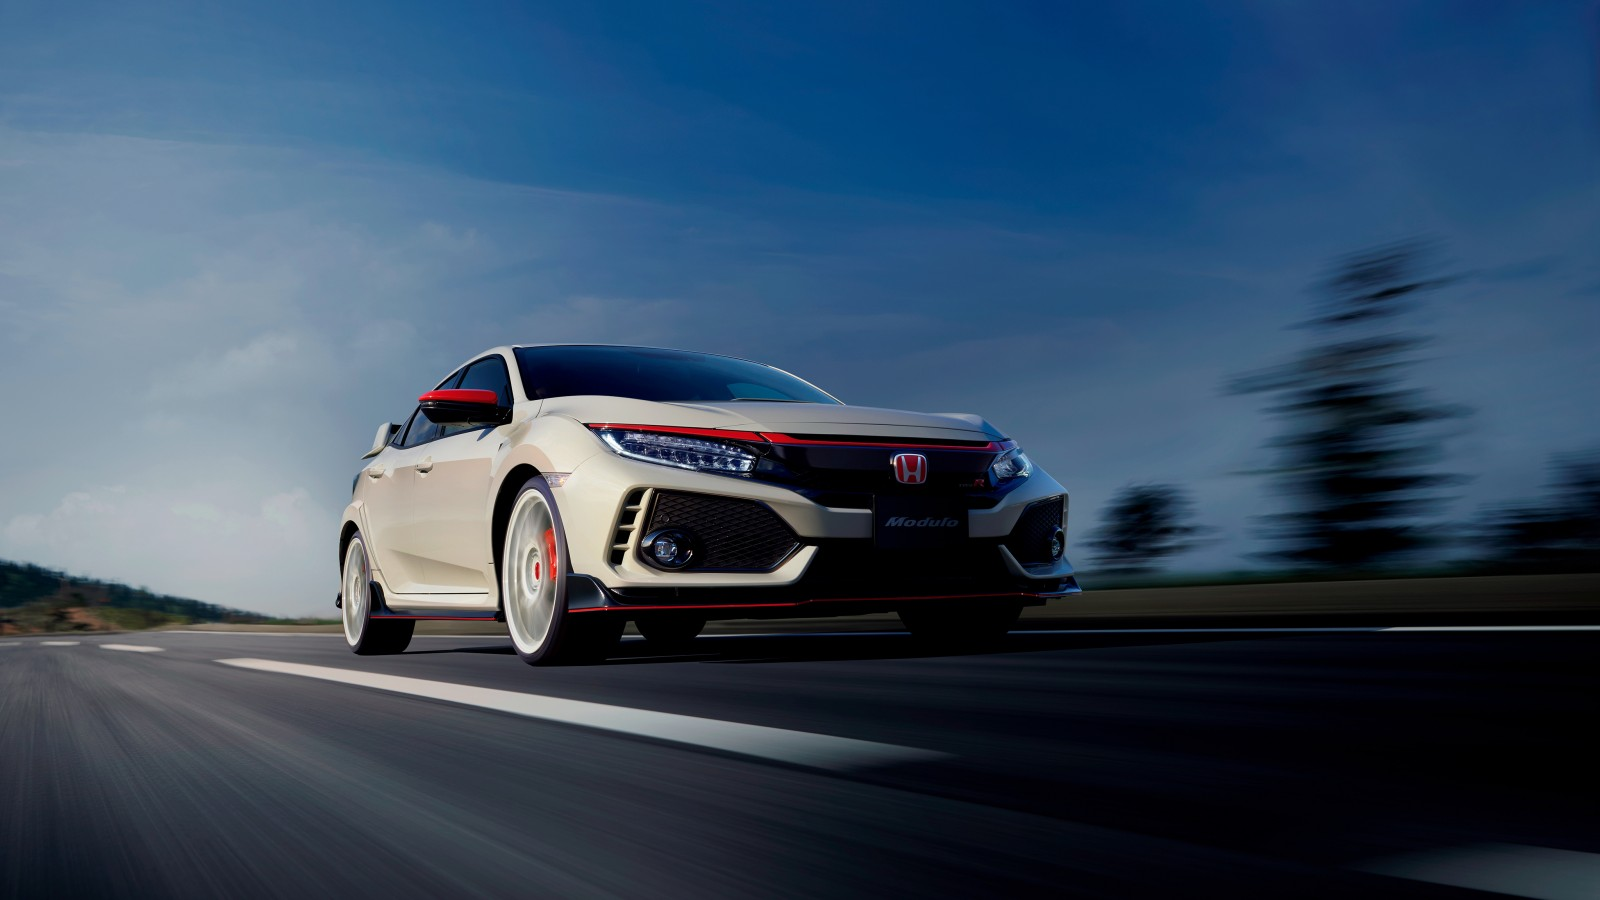 2017 Modulo Honda Civic Type R 4K Wallpaper | HD Car Wallpapers | ID #8157